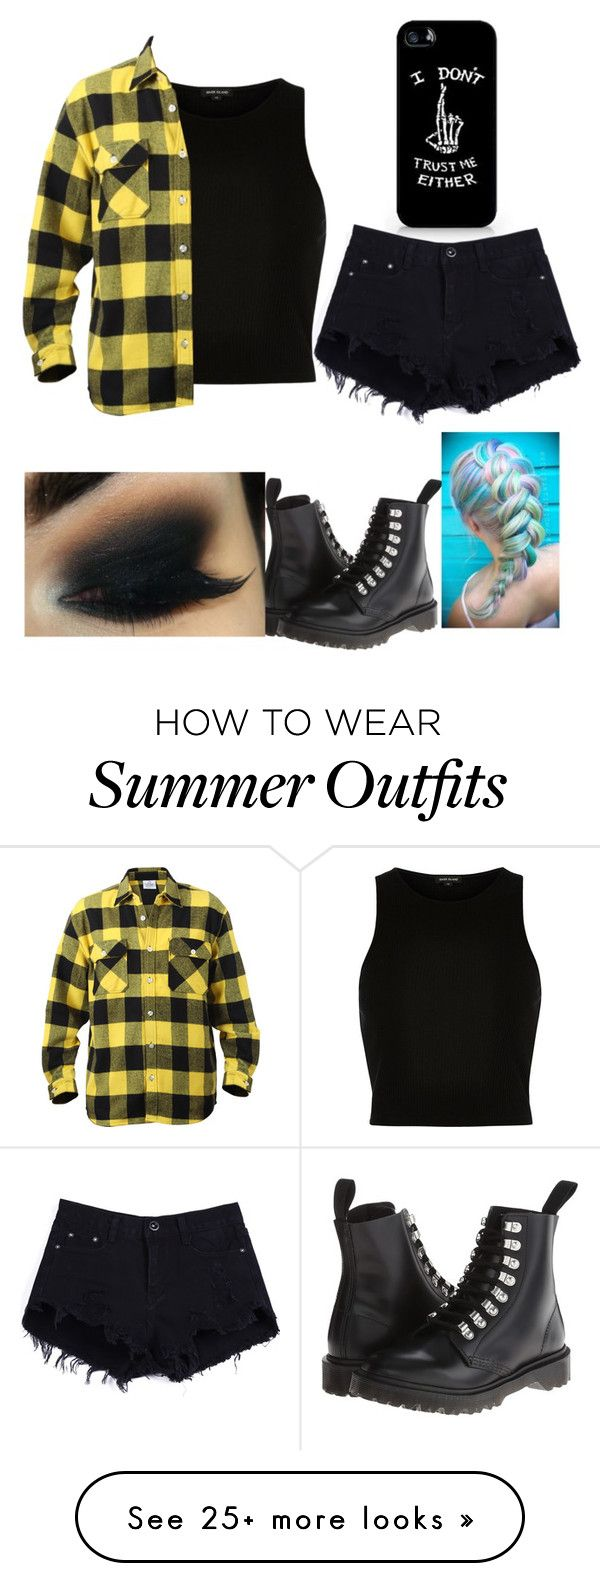 """""""Flannel Outfit #3"""" by ur-local-emo on Polyvore featuring River Island, Dr. Martens, women's clothing, women, female, woman, misses and juniors"""